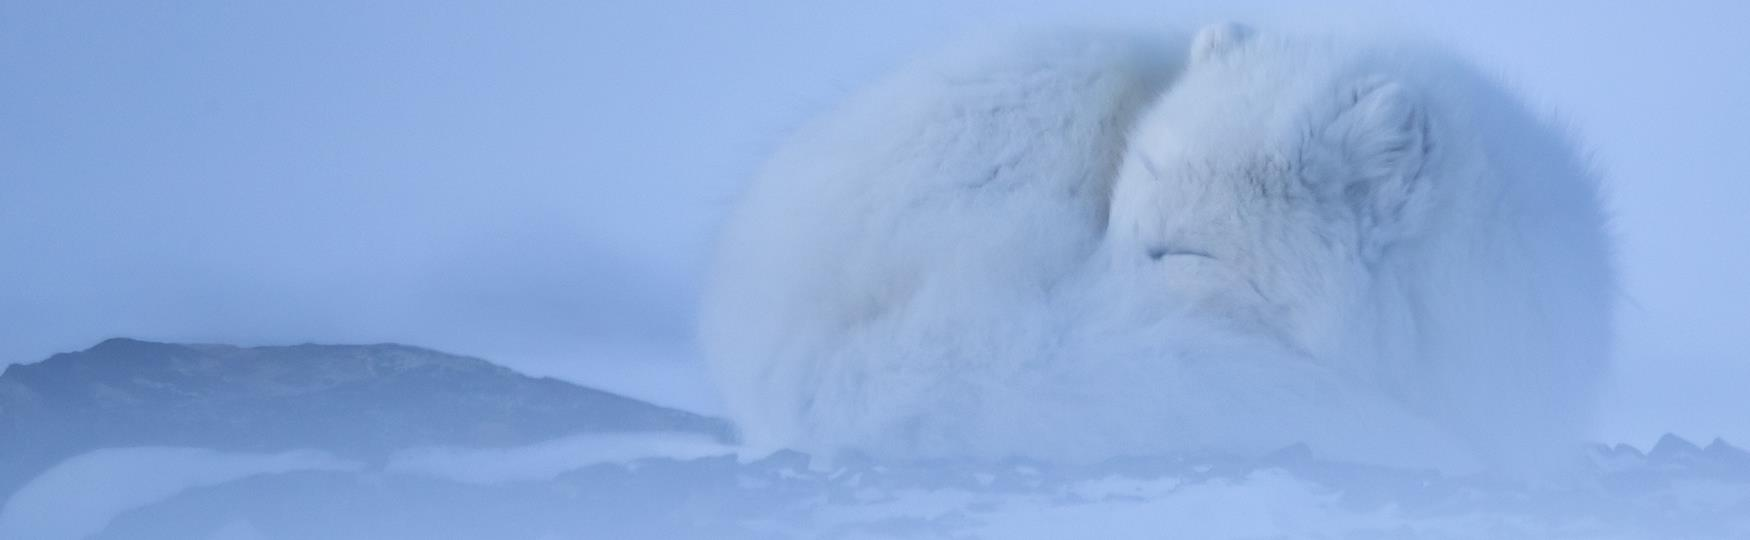 About Svalbard